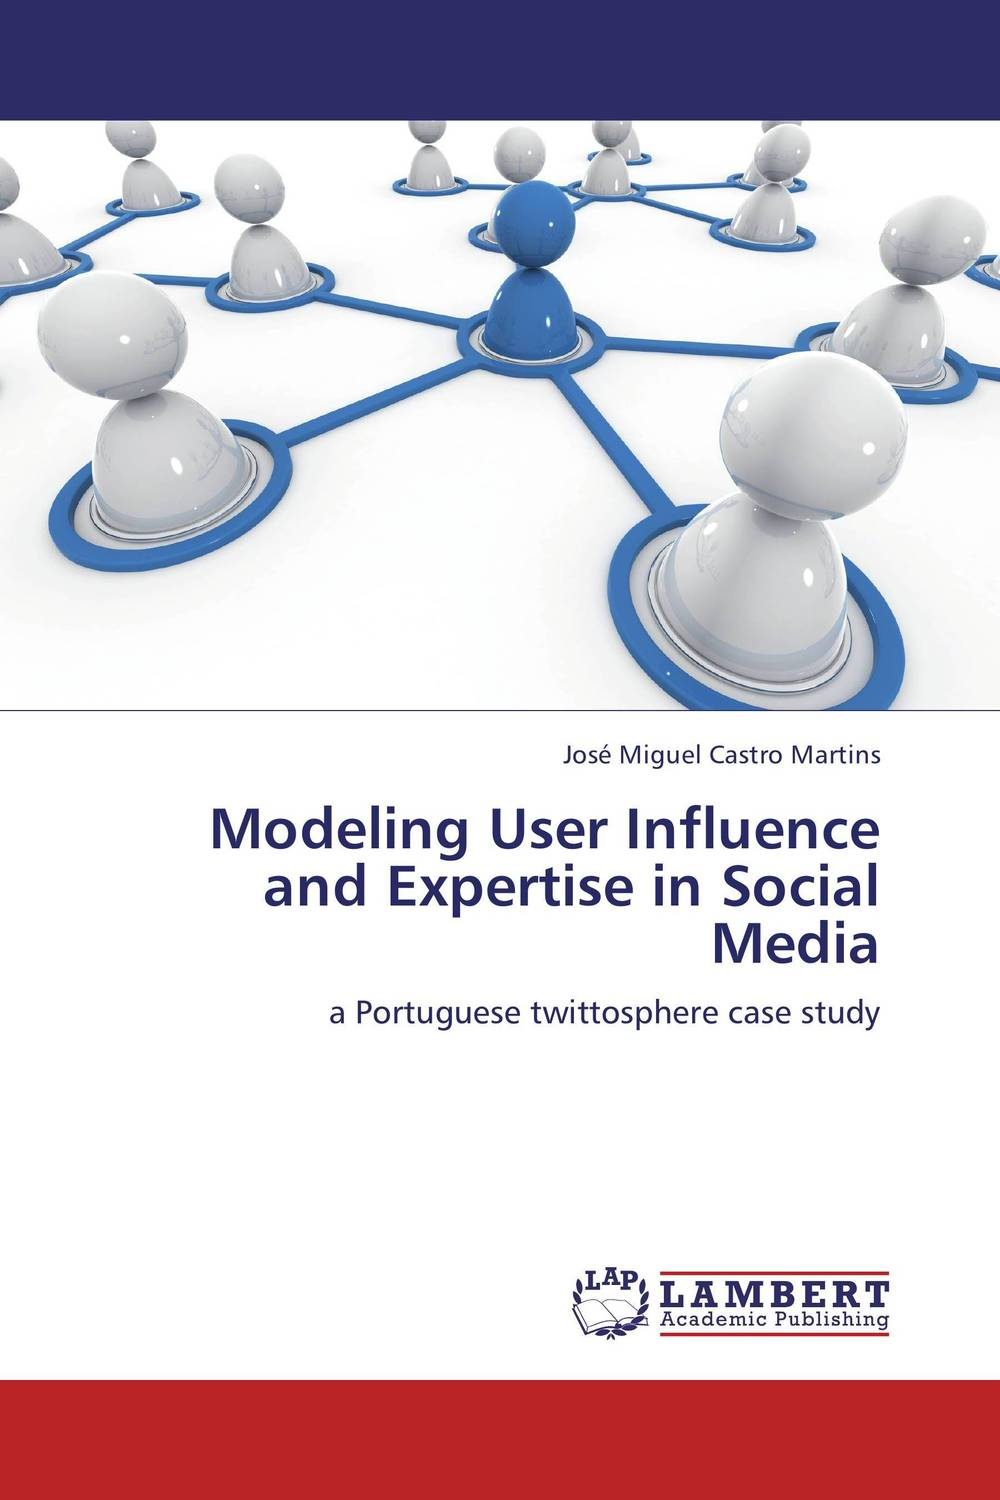 Modeling User Influence and Expertise in Social Media